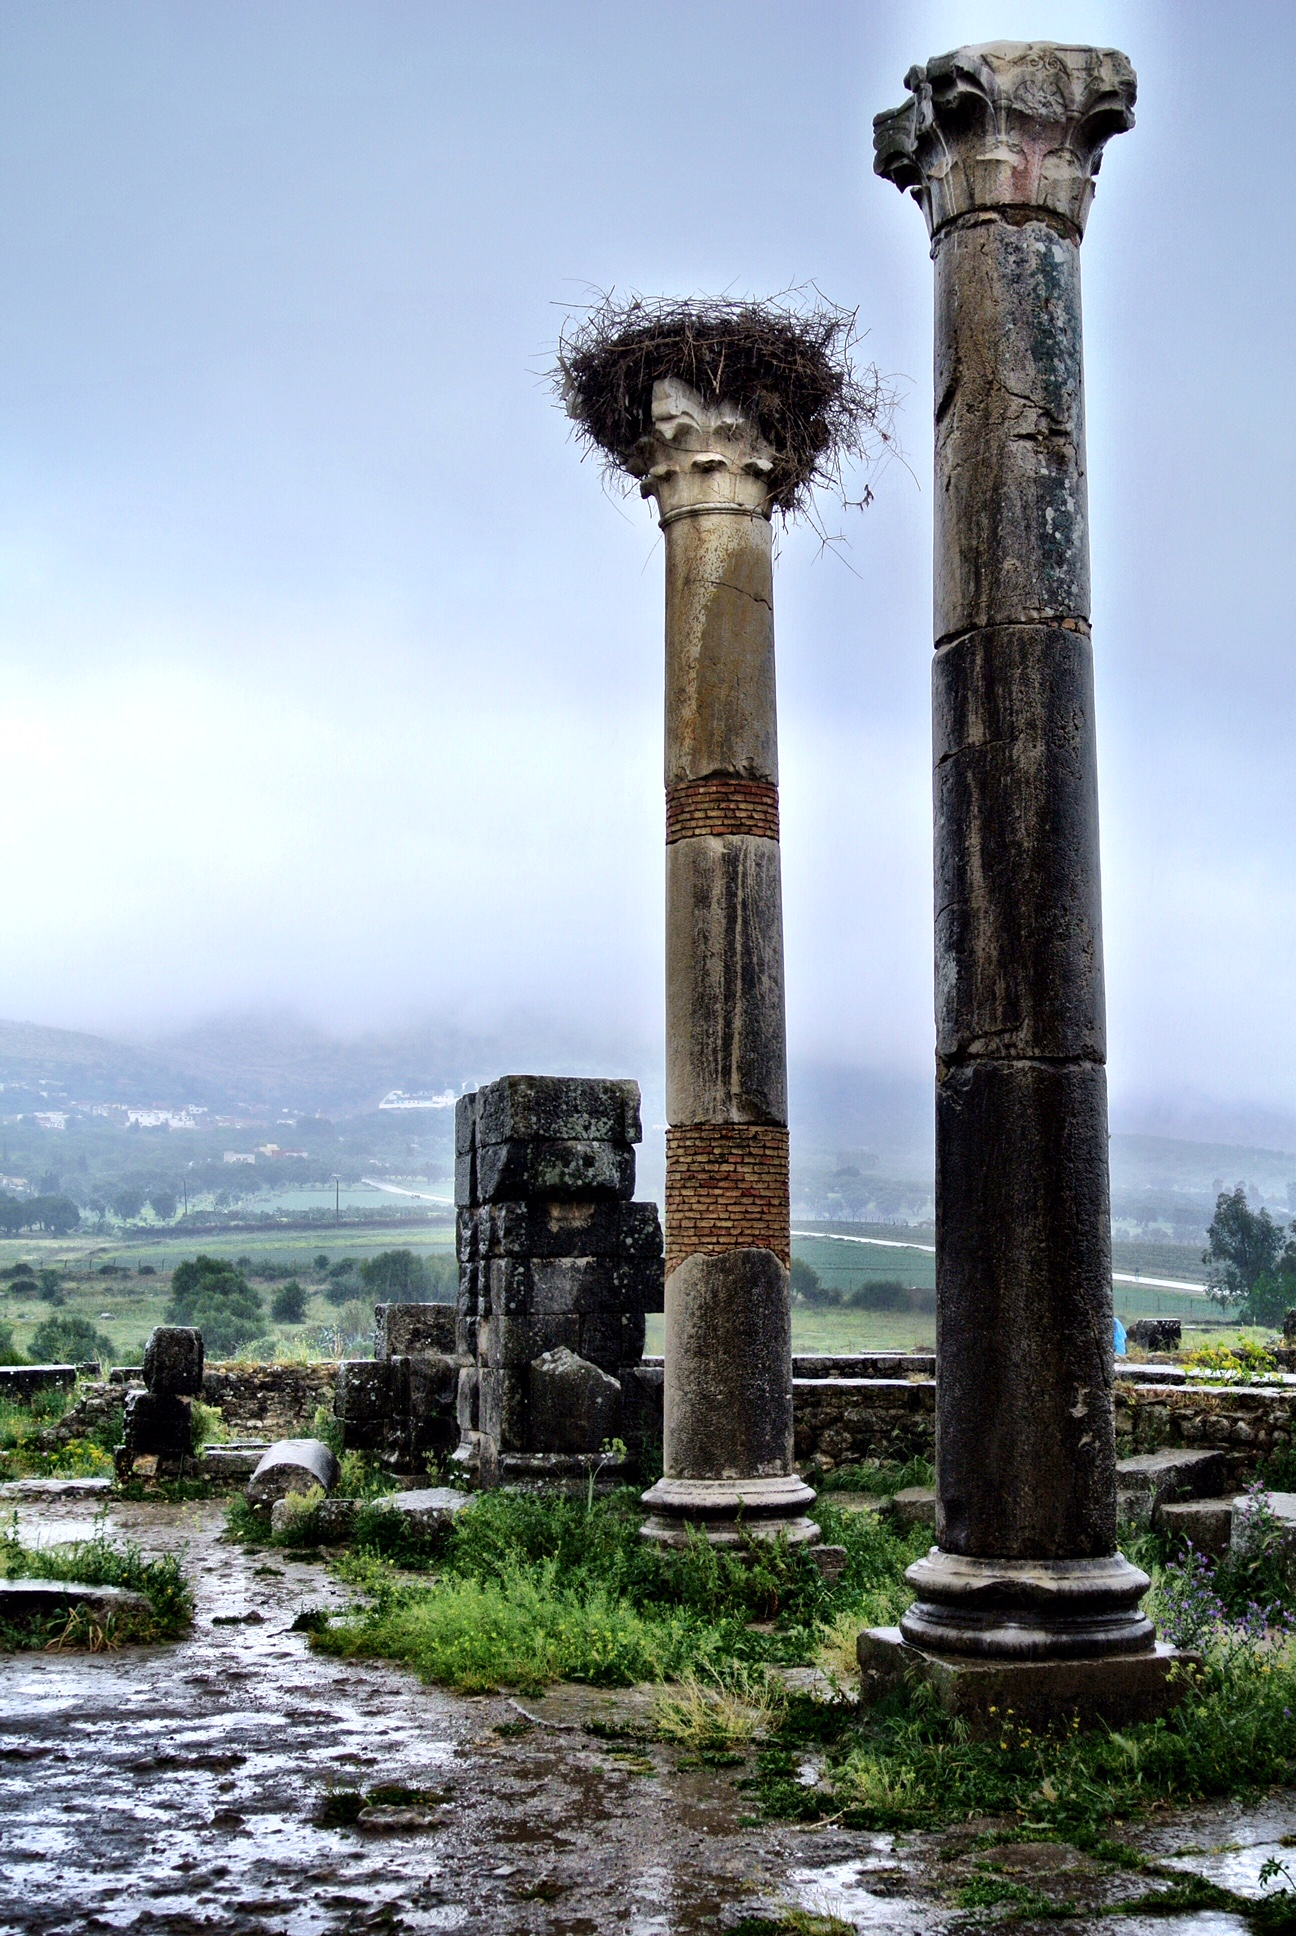 The stork nests atop columns at the remains of the forum of Volubilis have become a tourist favorite